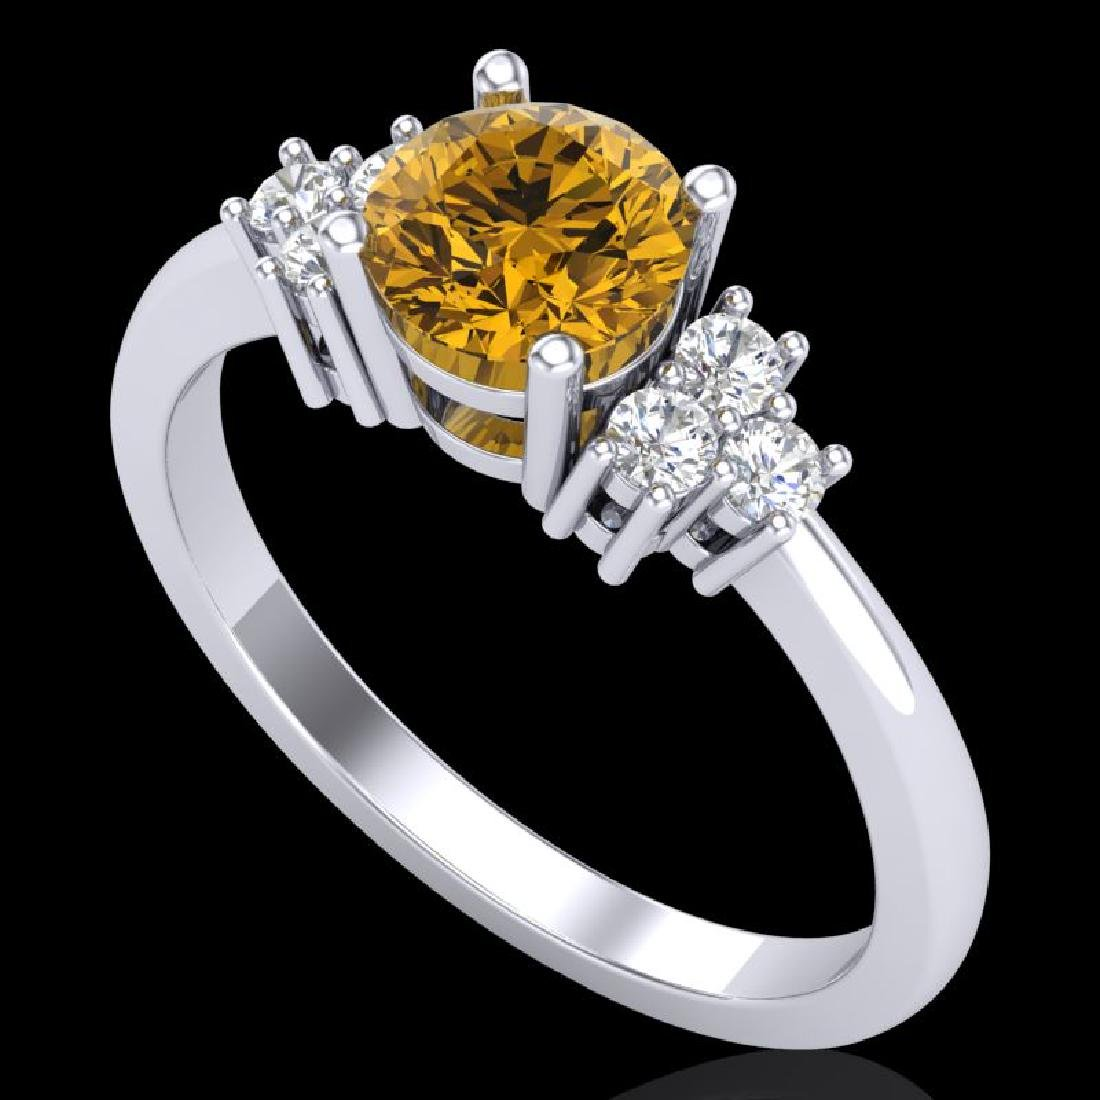 1 CTW Intense Yellow Diamond Solitaire Engagement